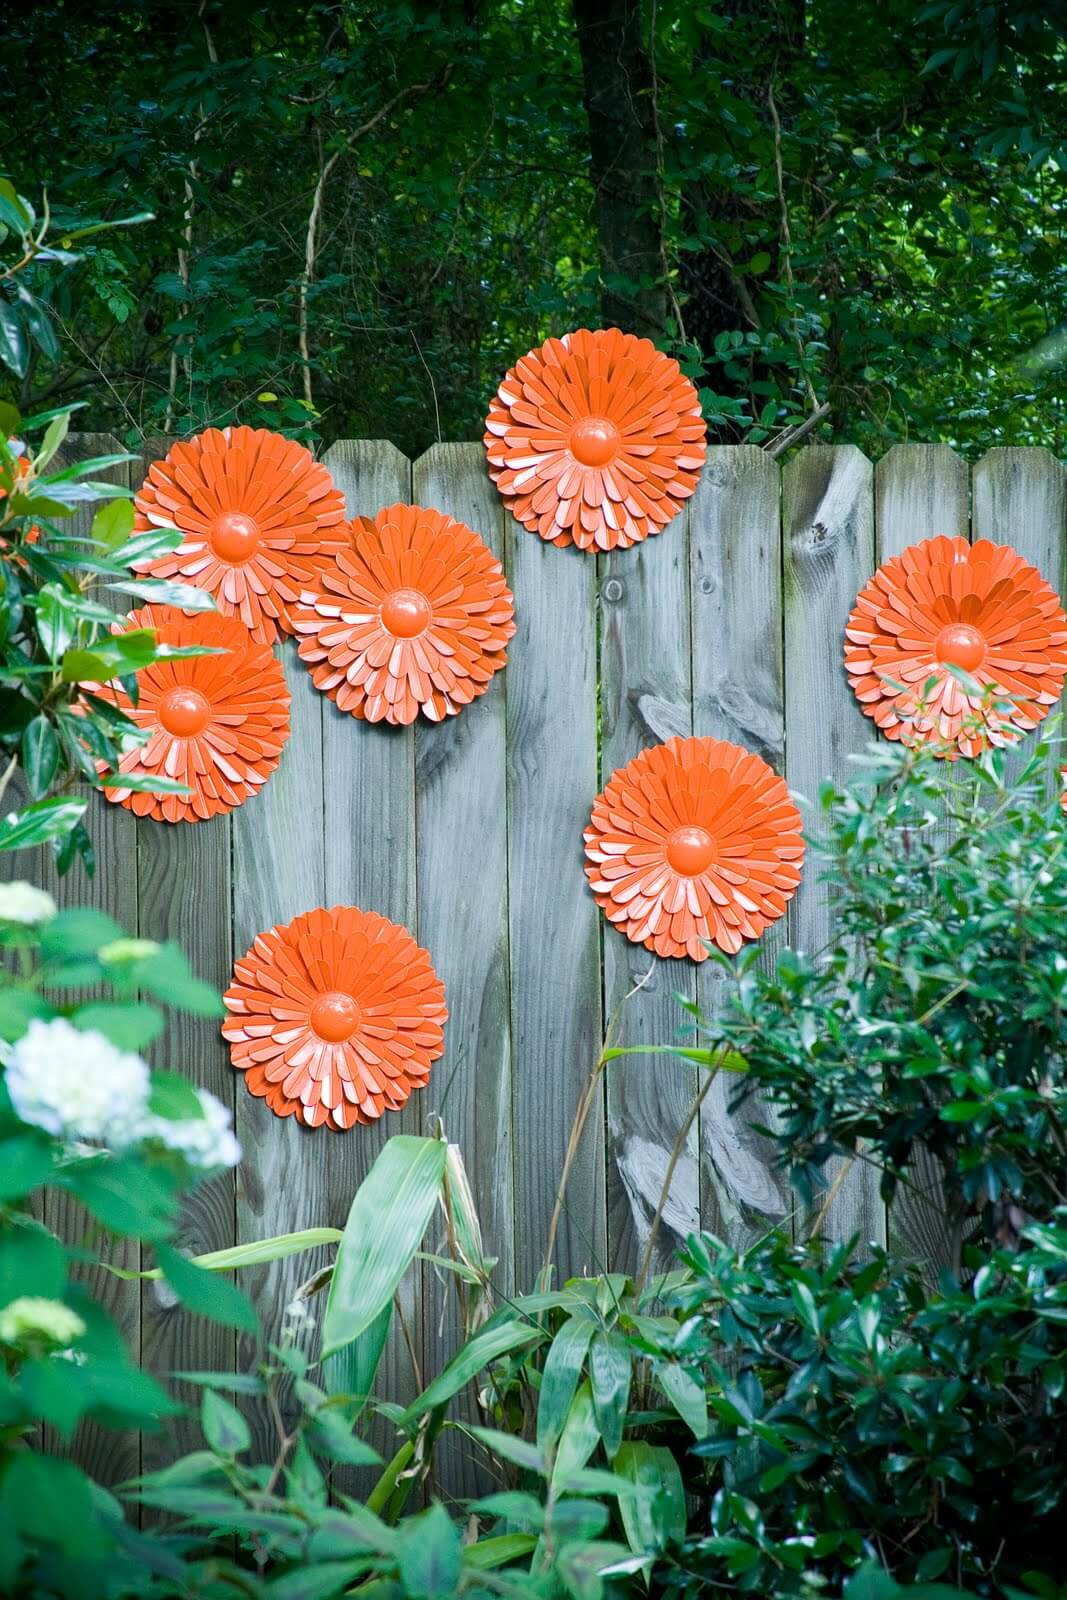 Brilliant Orange Floral Decorations on the Fence